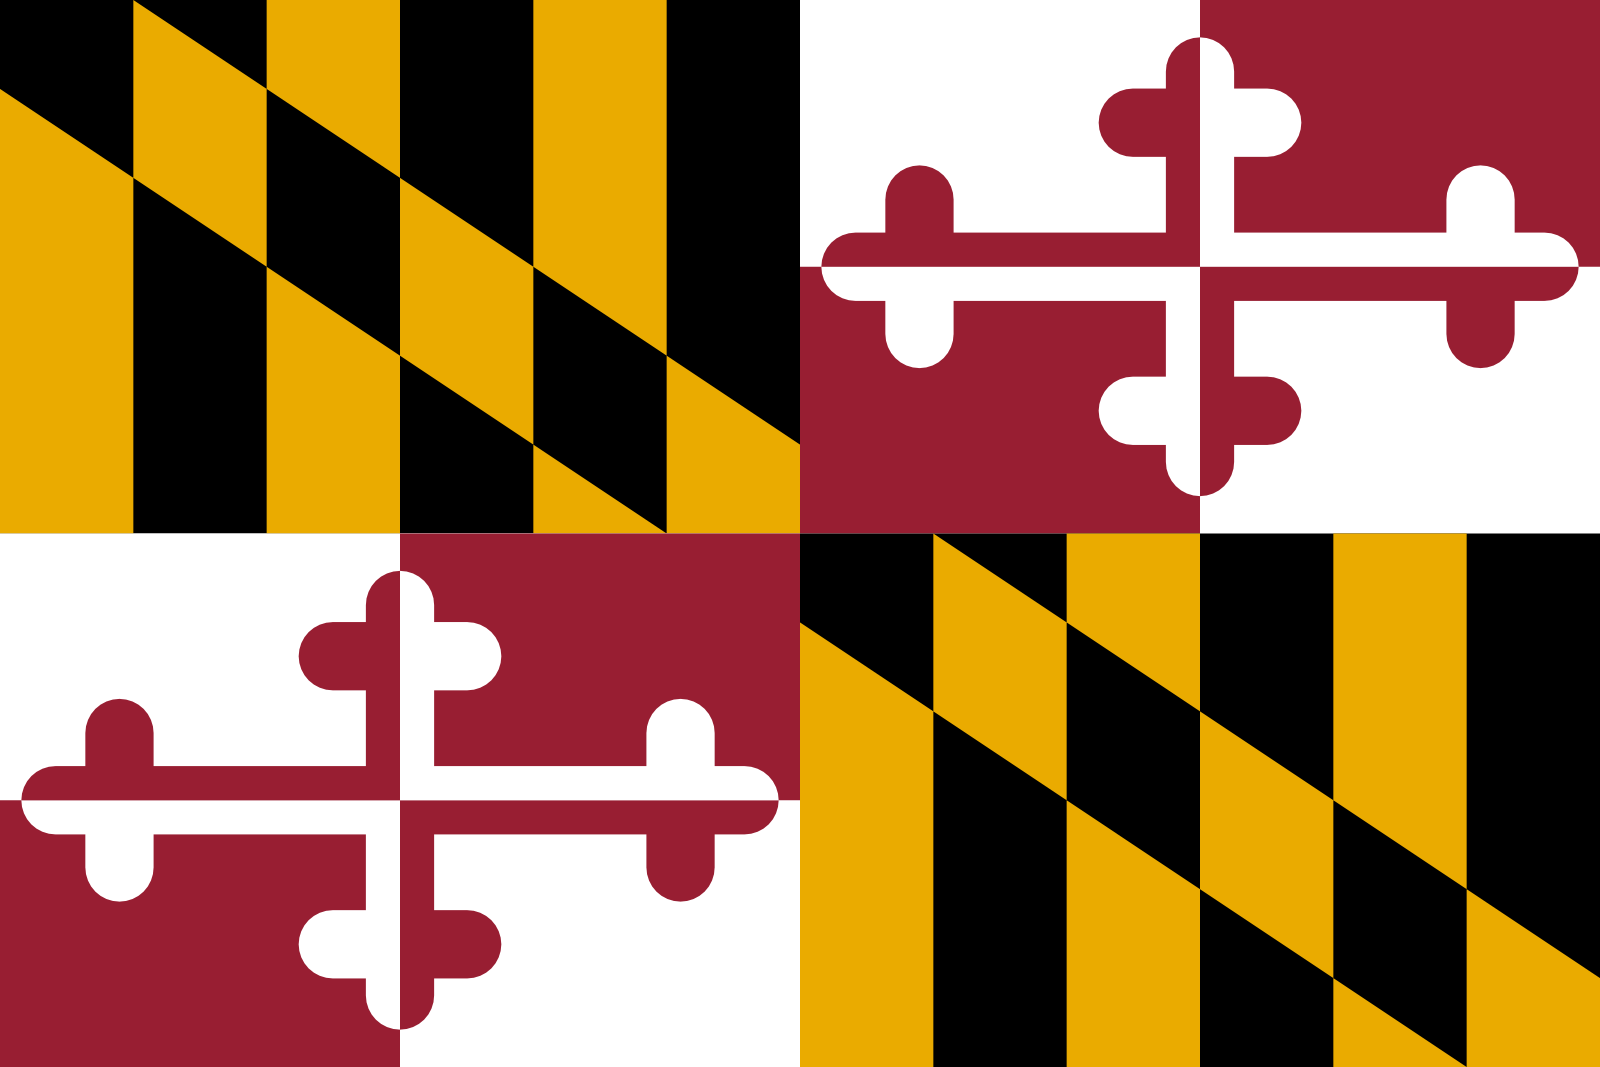 Who is the patron saint of Maryland?